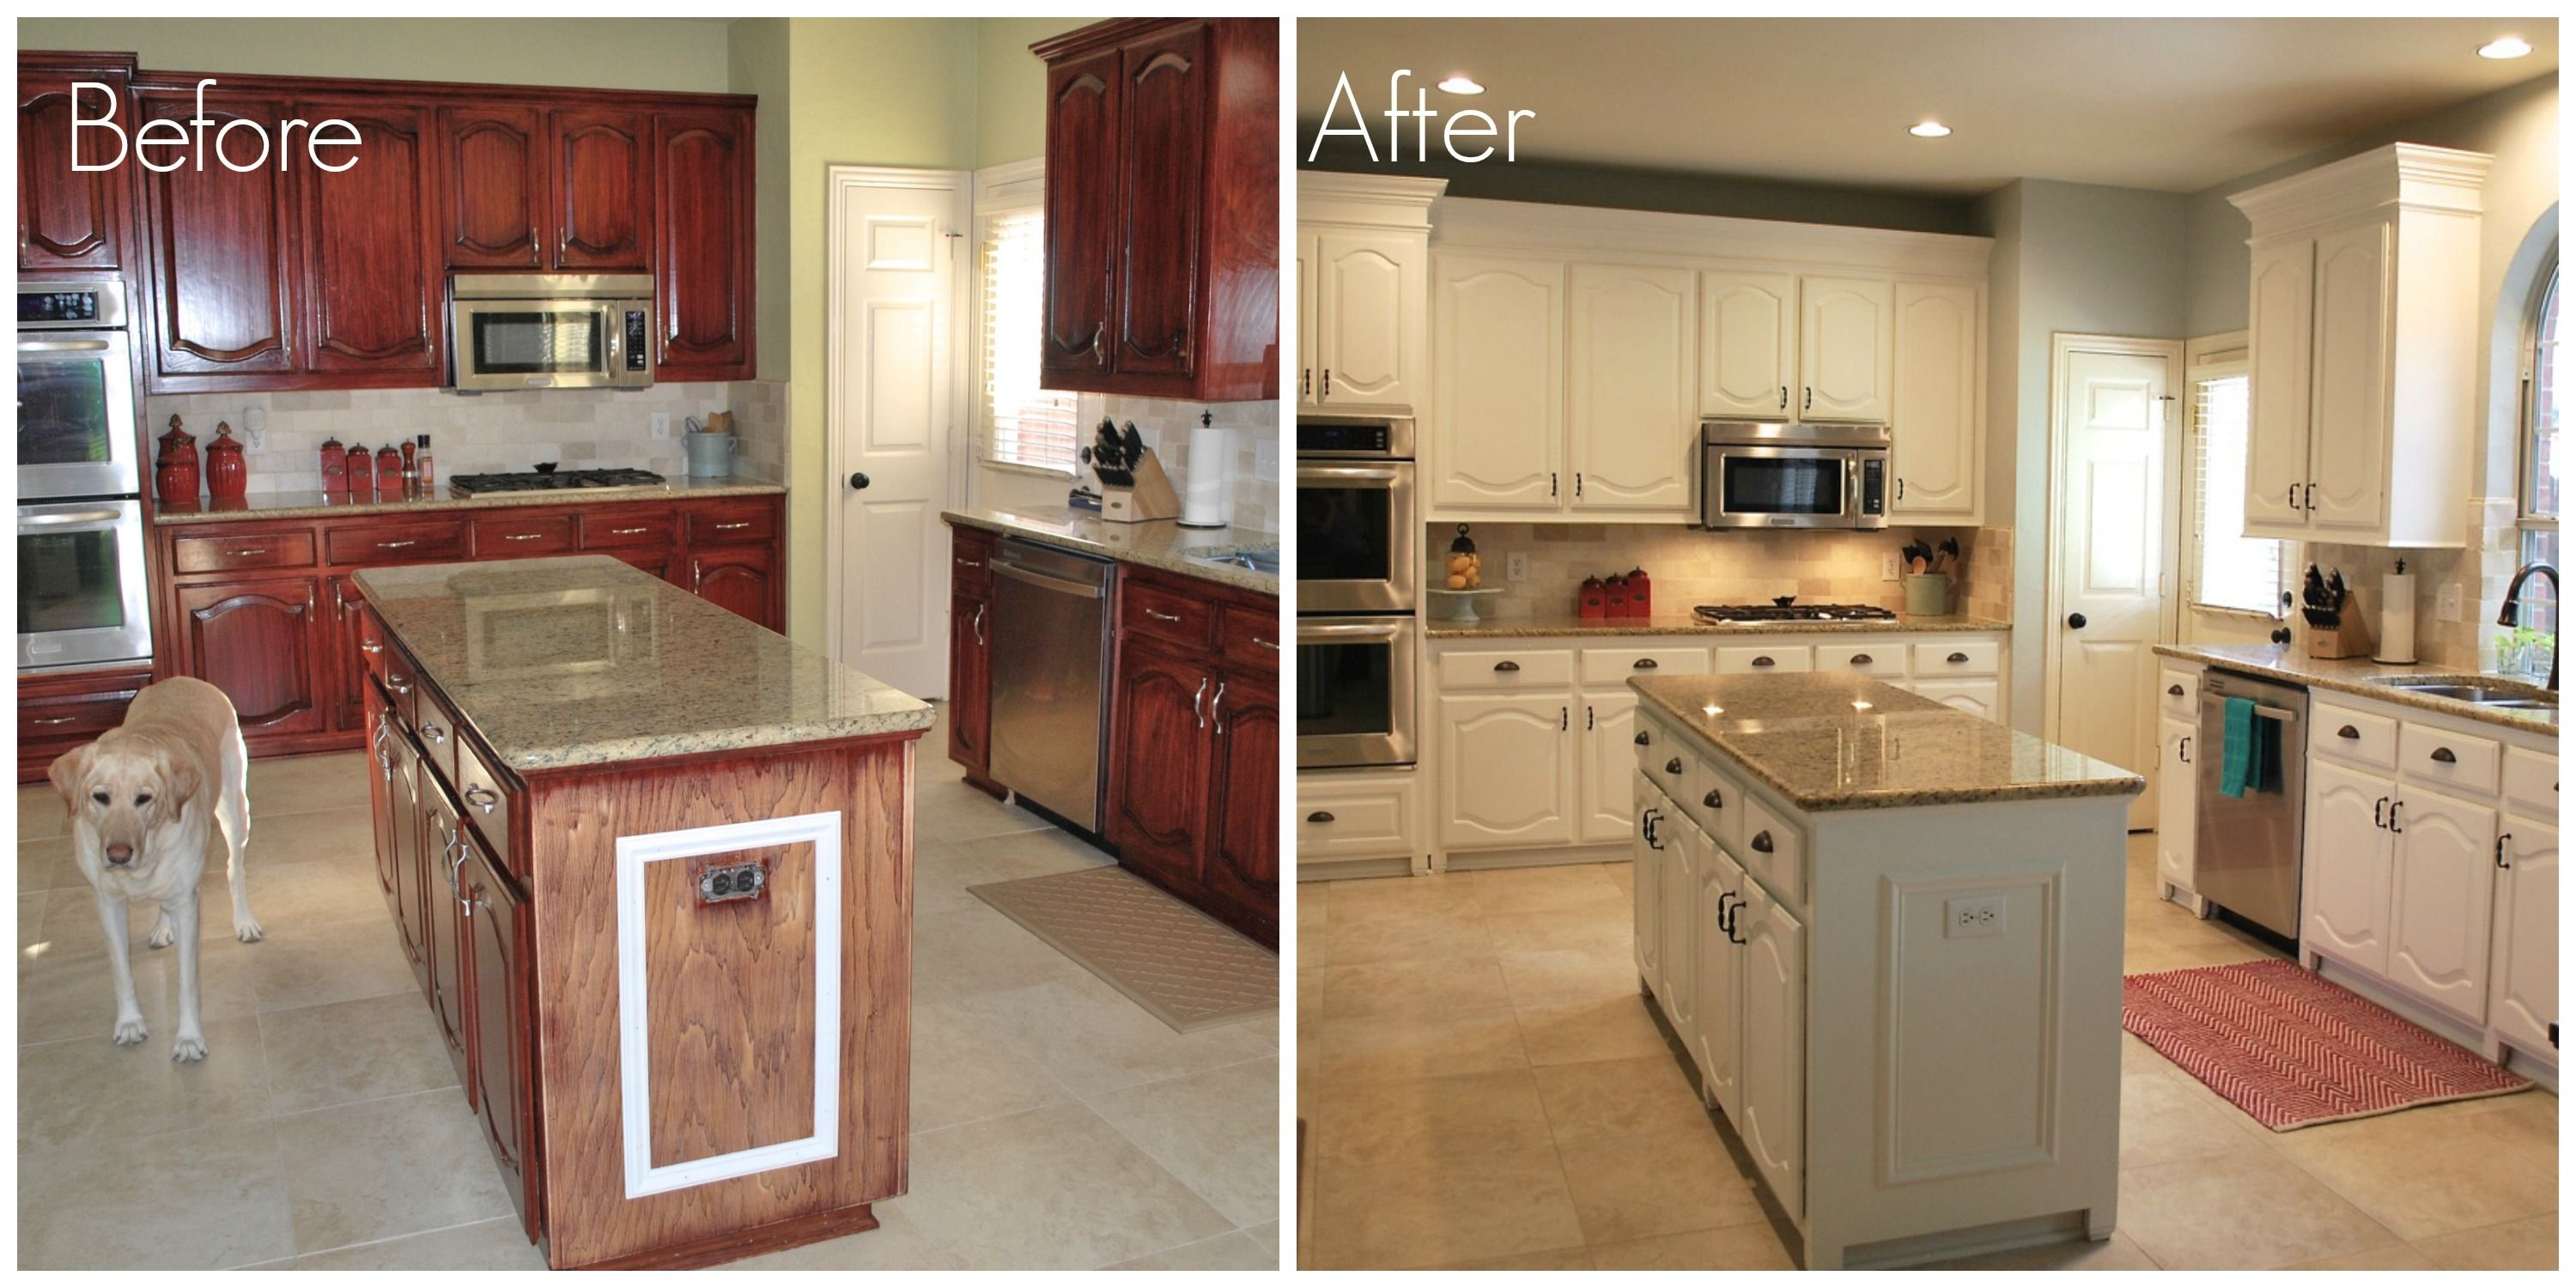 Before after kitchen remodel pinterest painting Revamp old kitchen cabinets